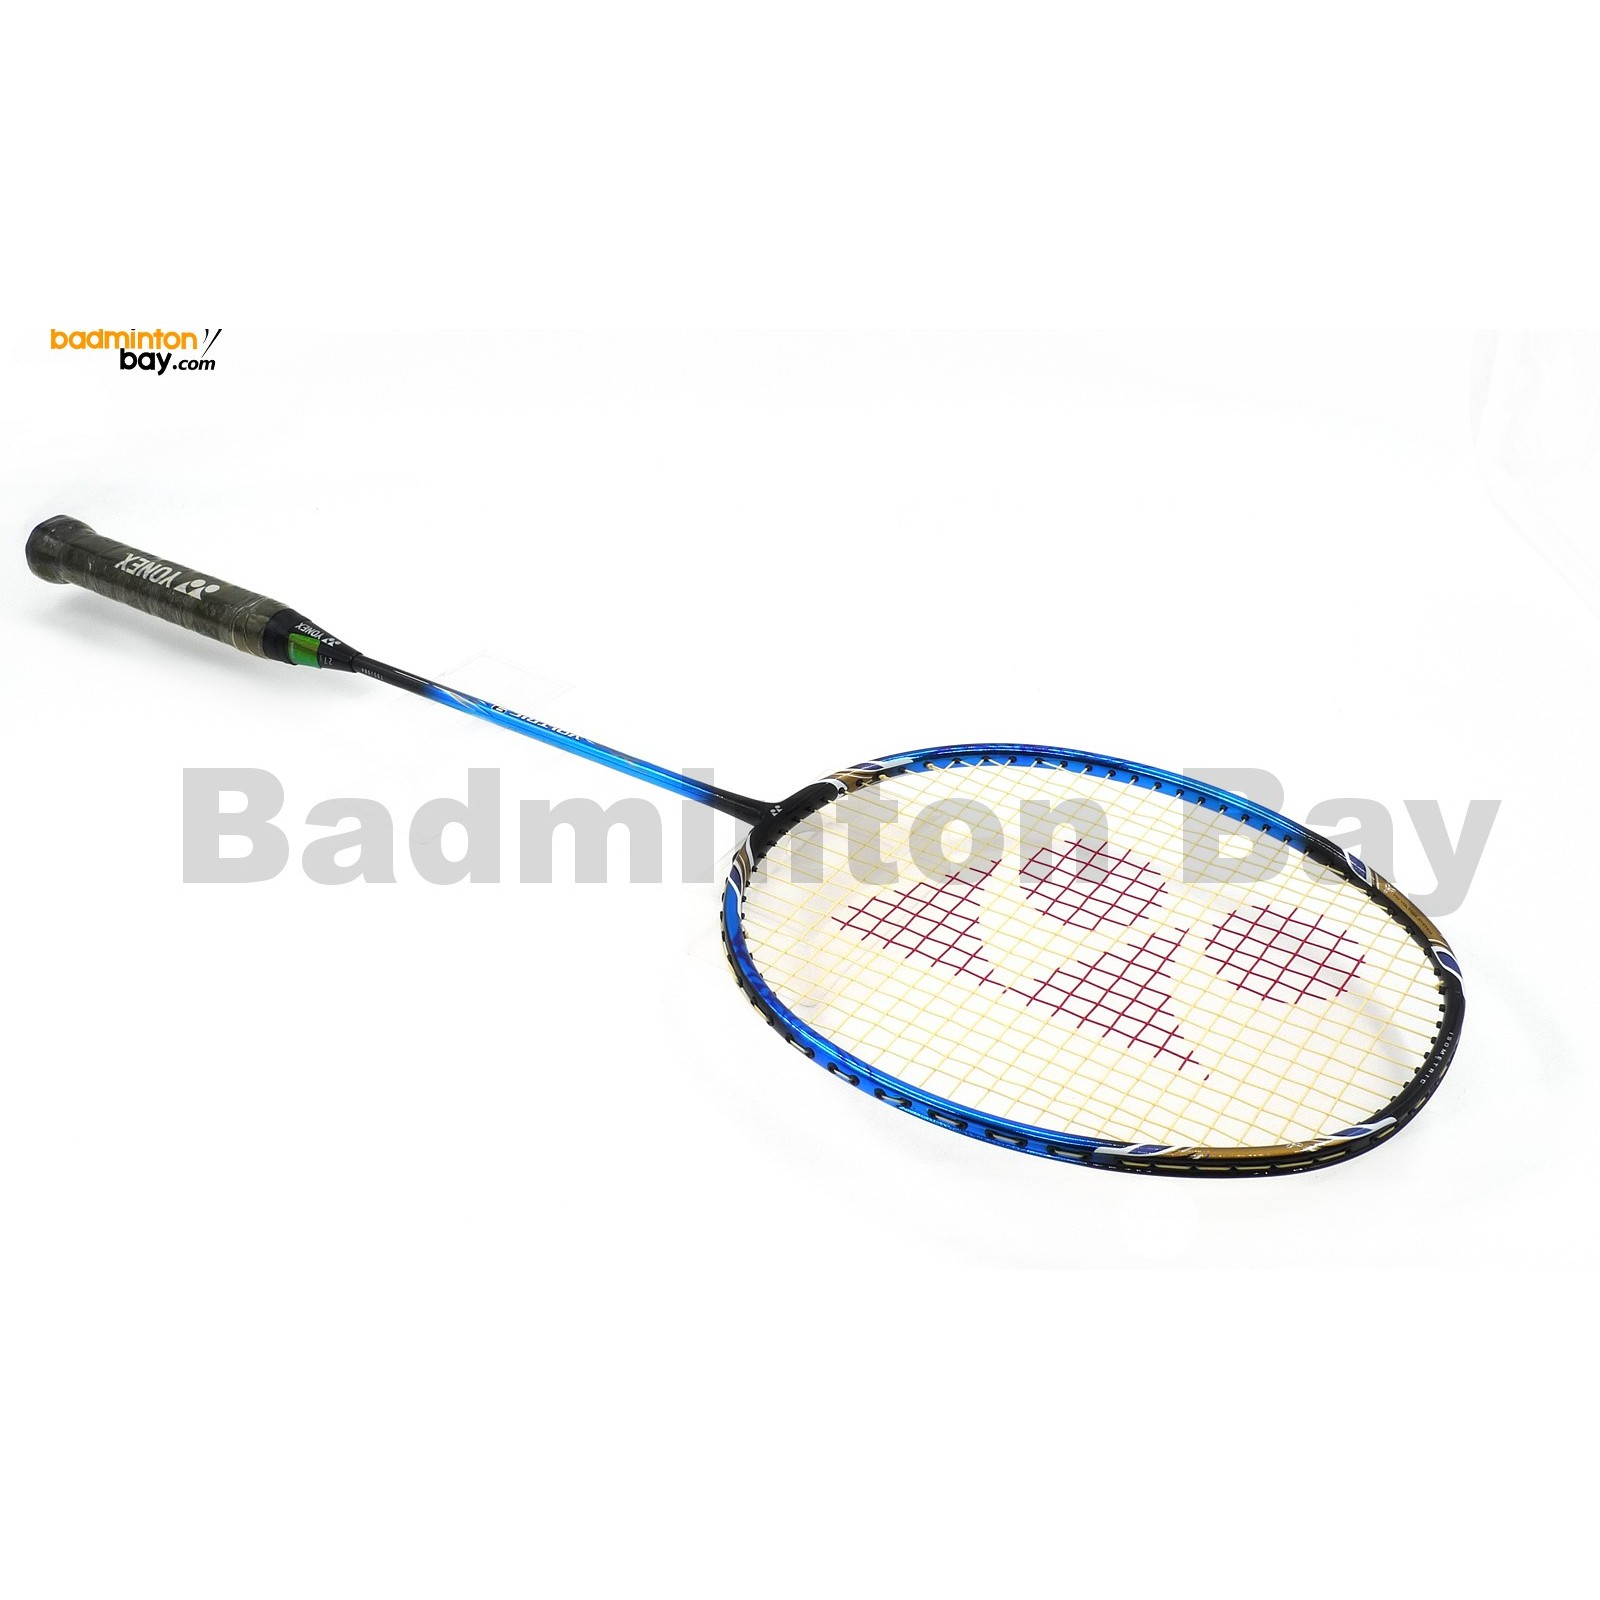 ~ Out of stock Yonex Voltric 9 Badminton Racket (3U-G5) Pre-strung at 21lbs